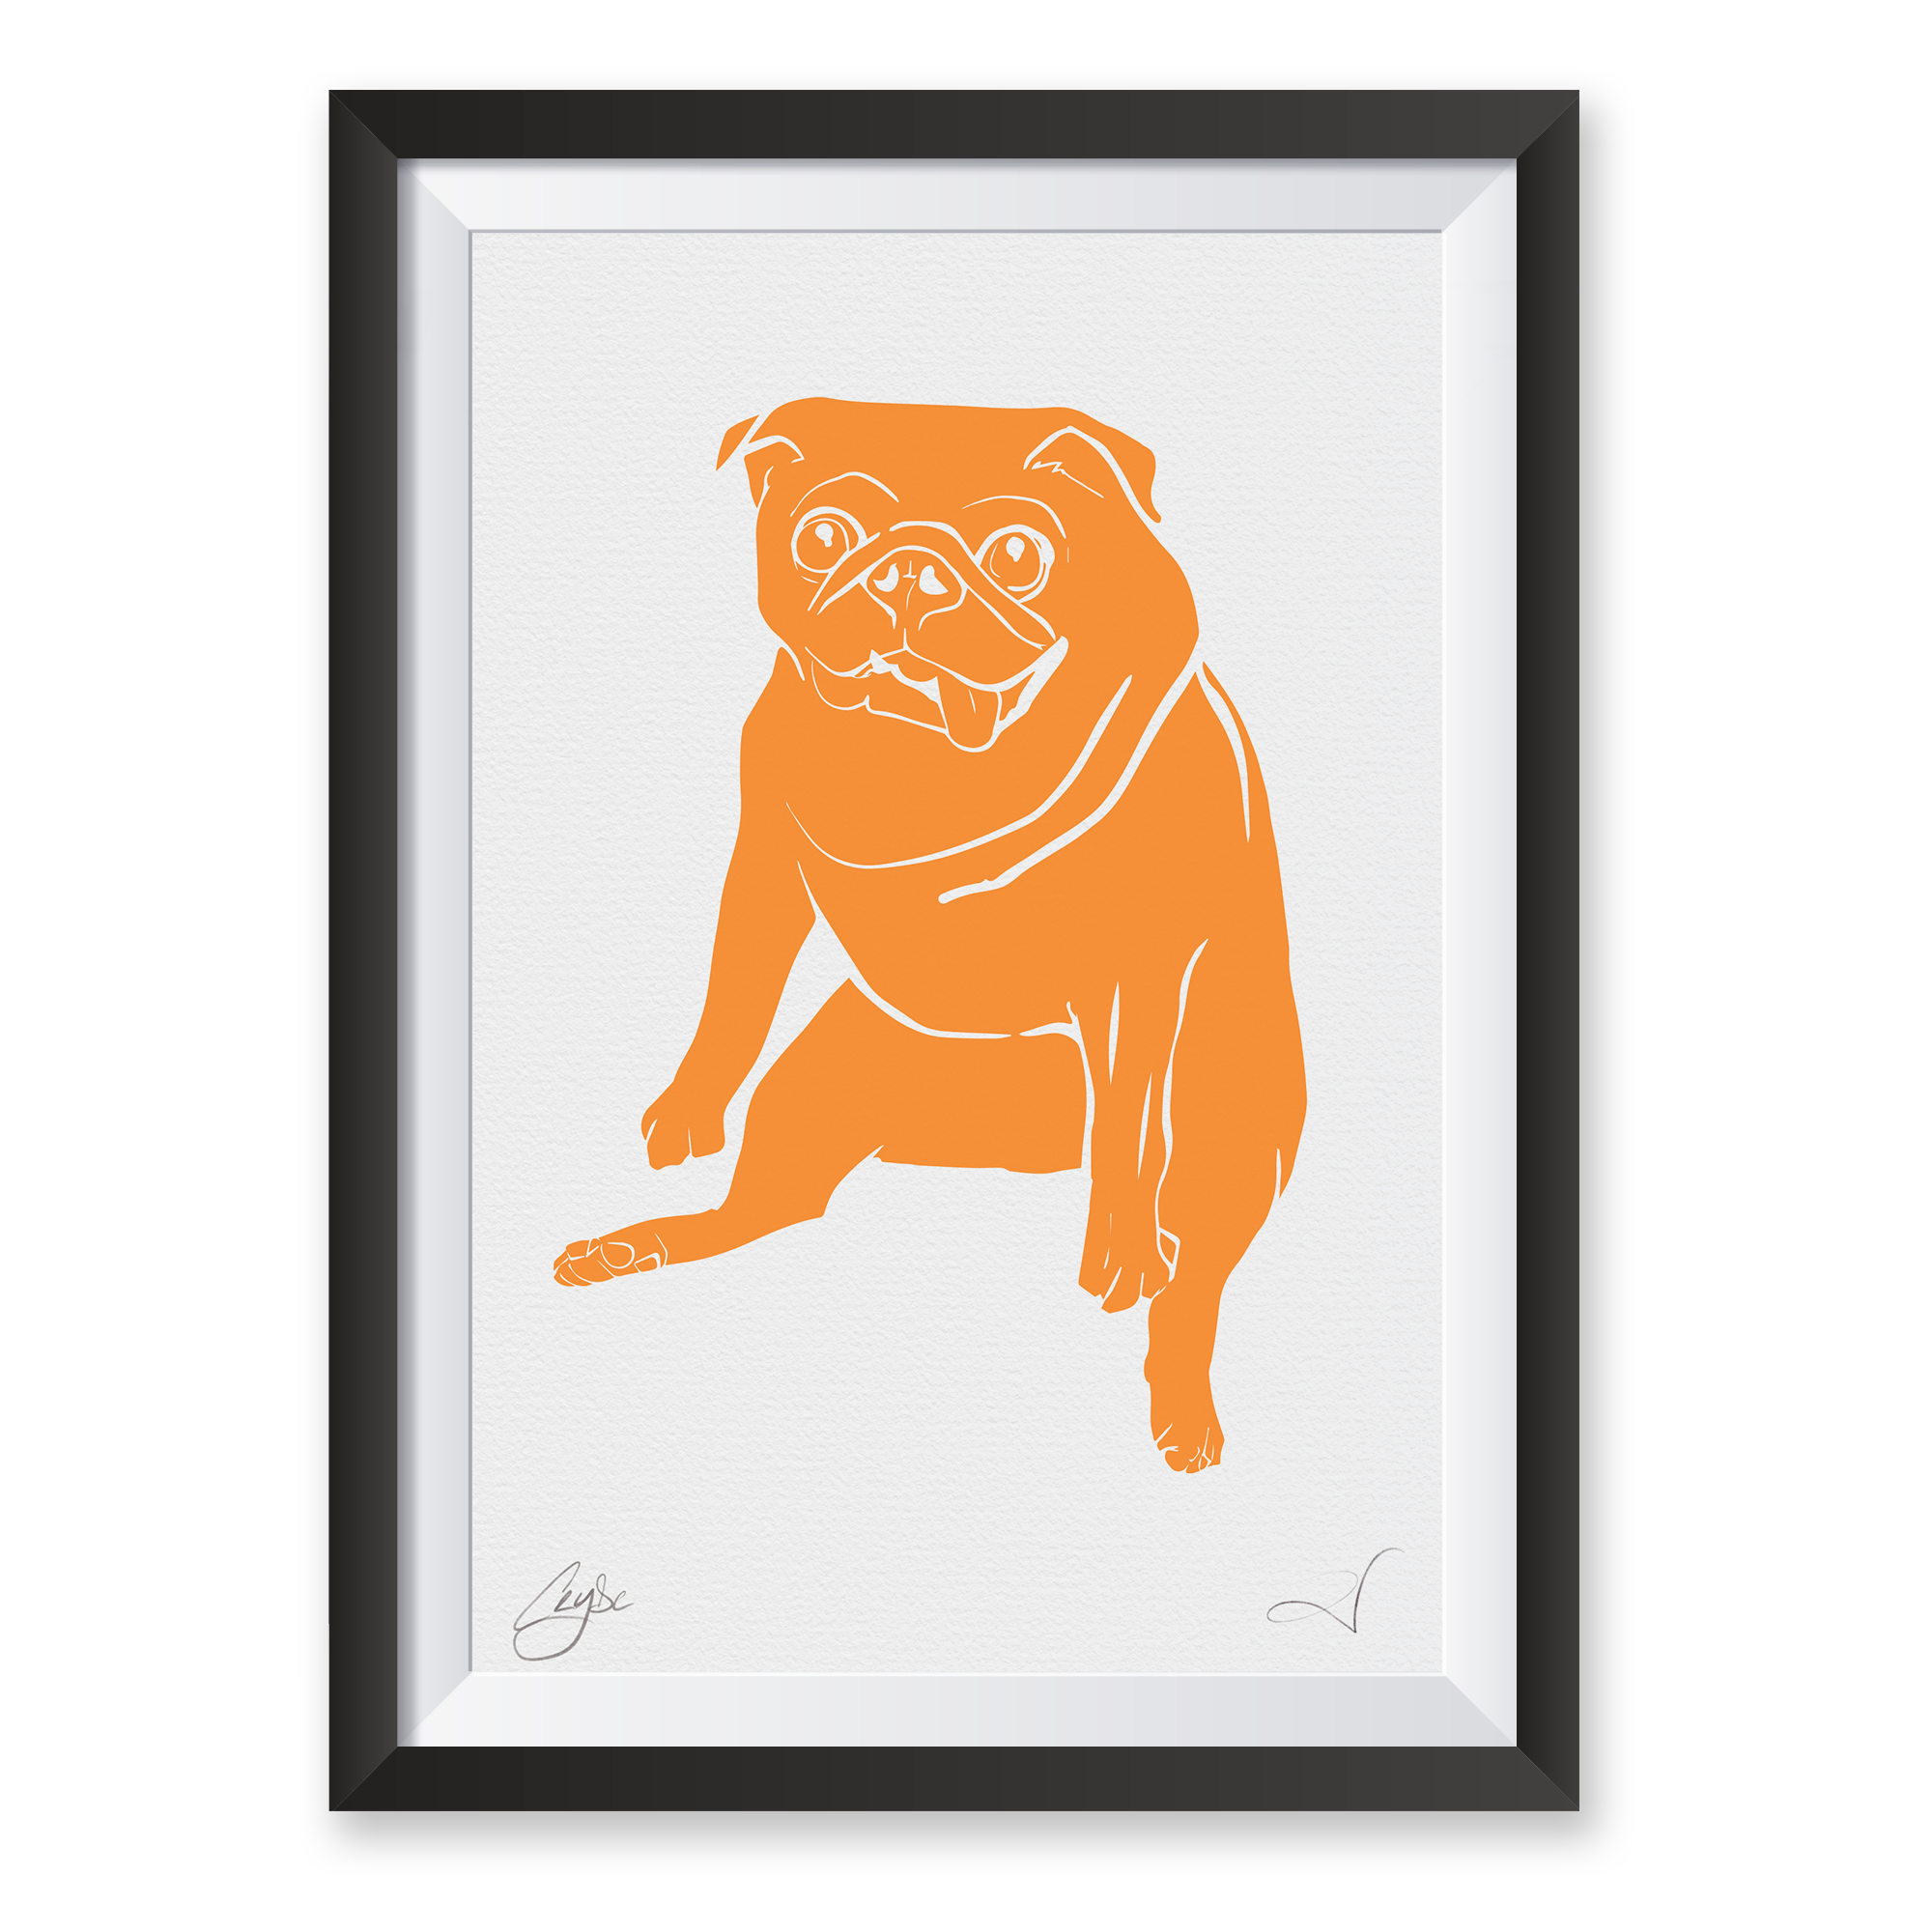 FRAMED_CLYDE_PRINT__0002_ORANGE.png